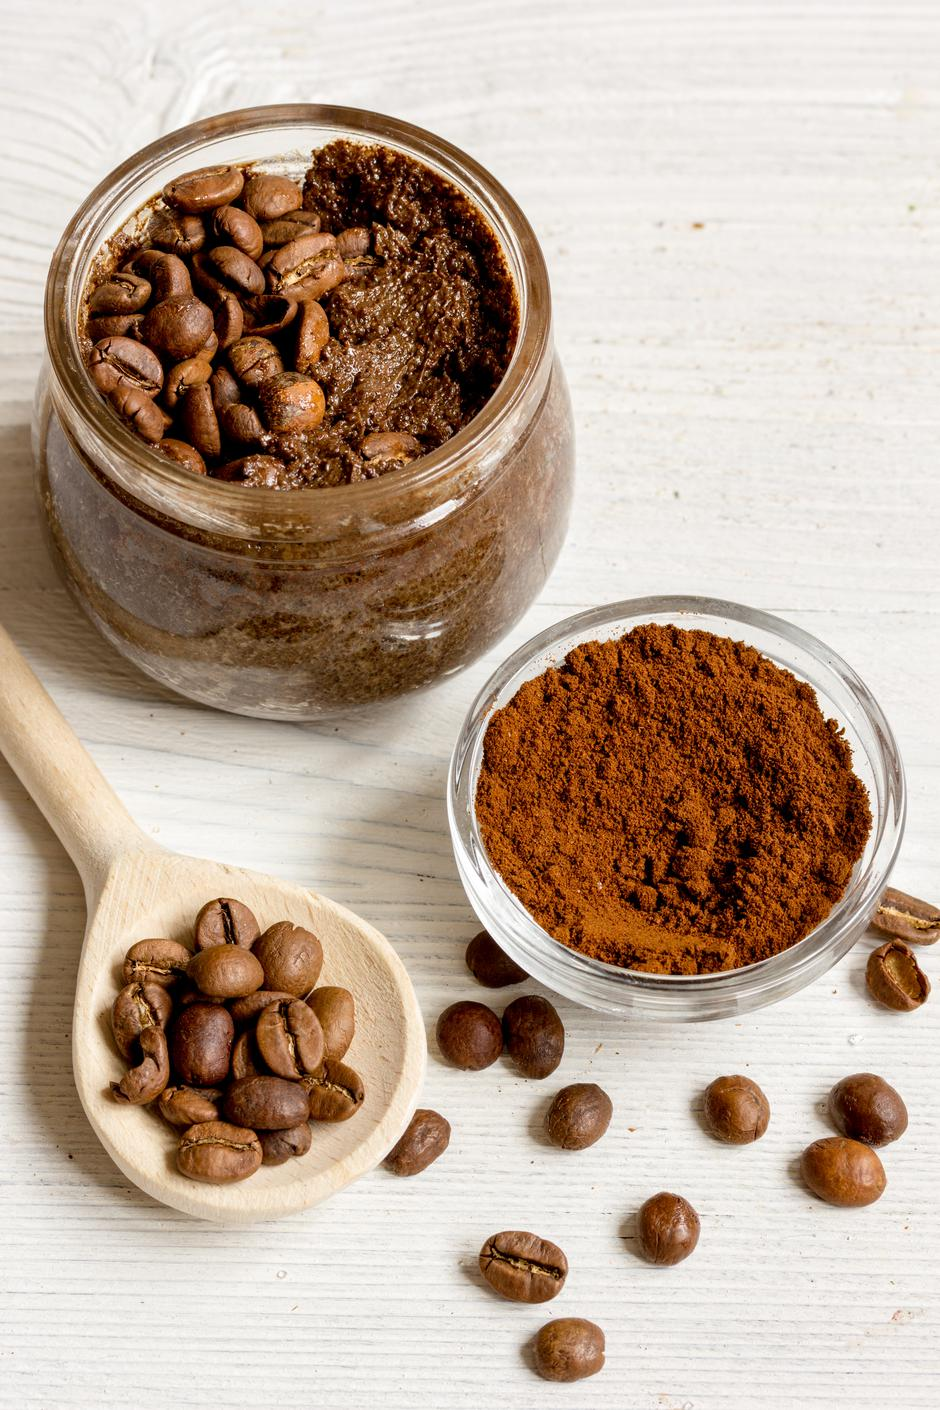 handmade coffee-cocoa scrub on wooden background close up | Autor: 279photo